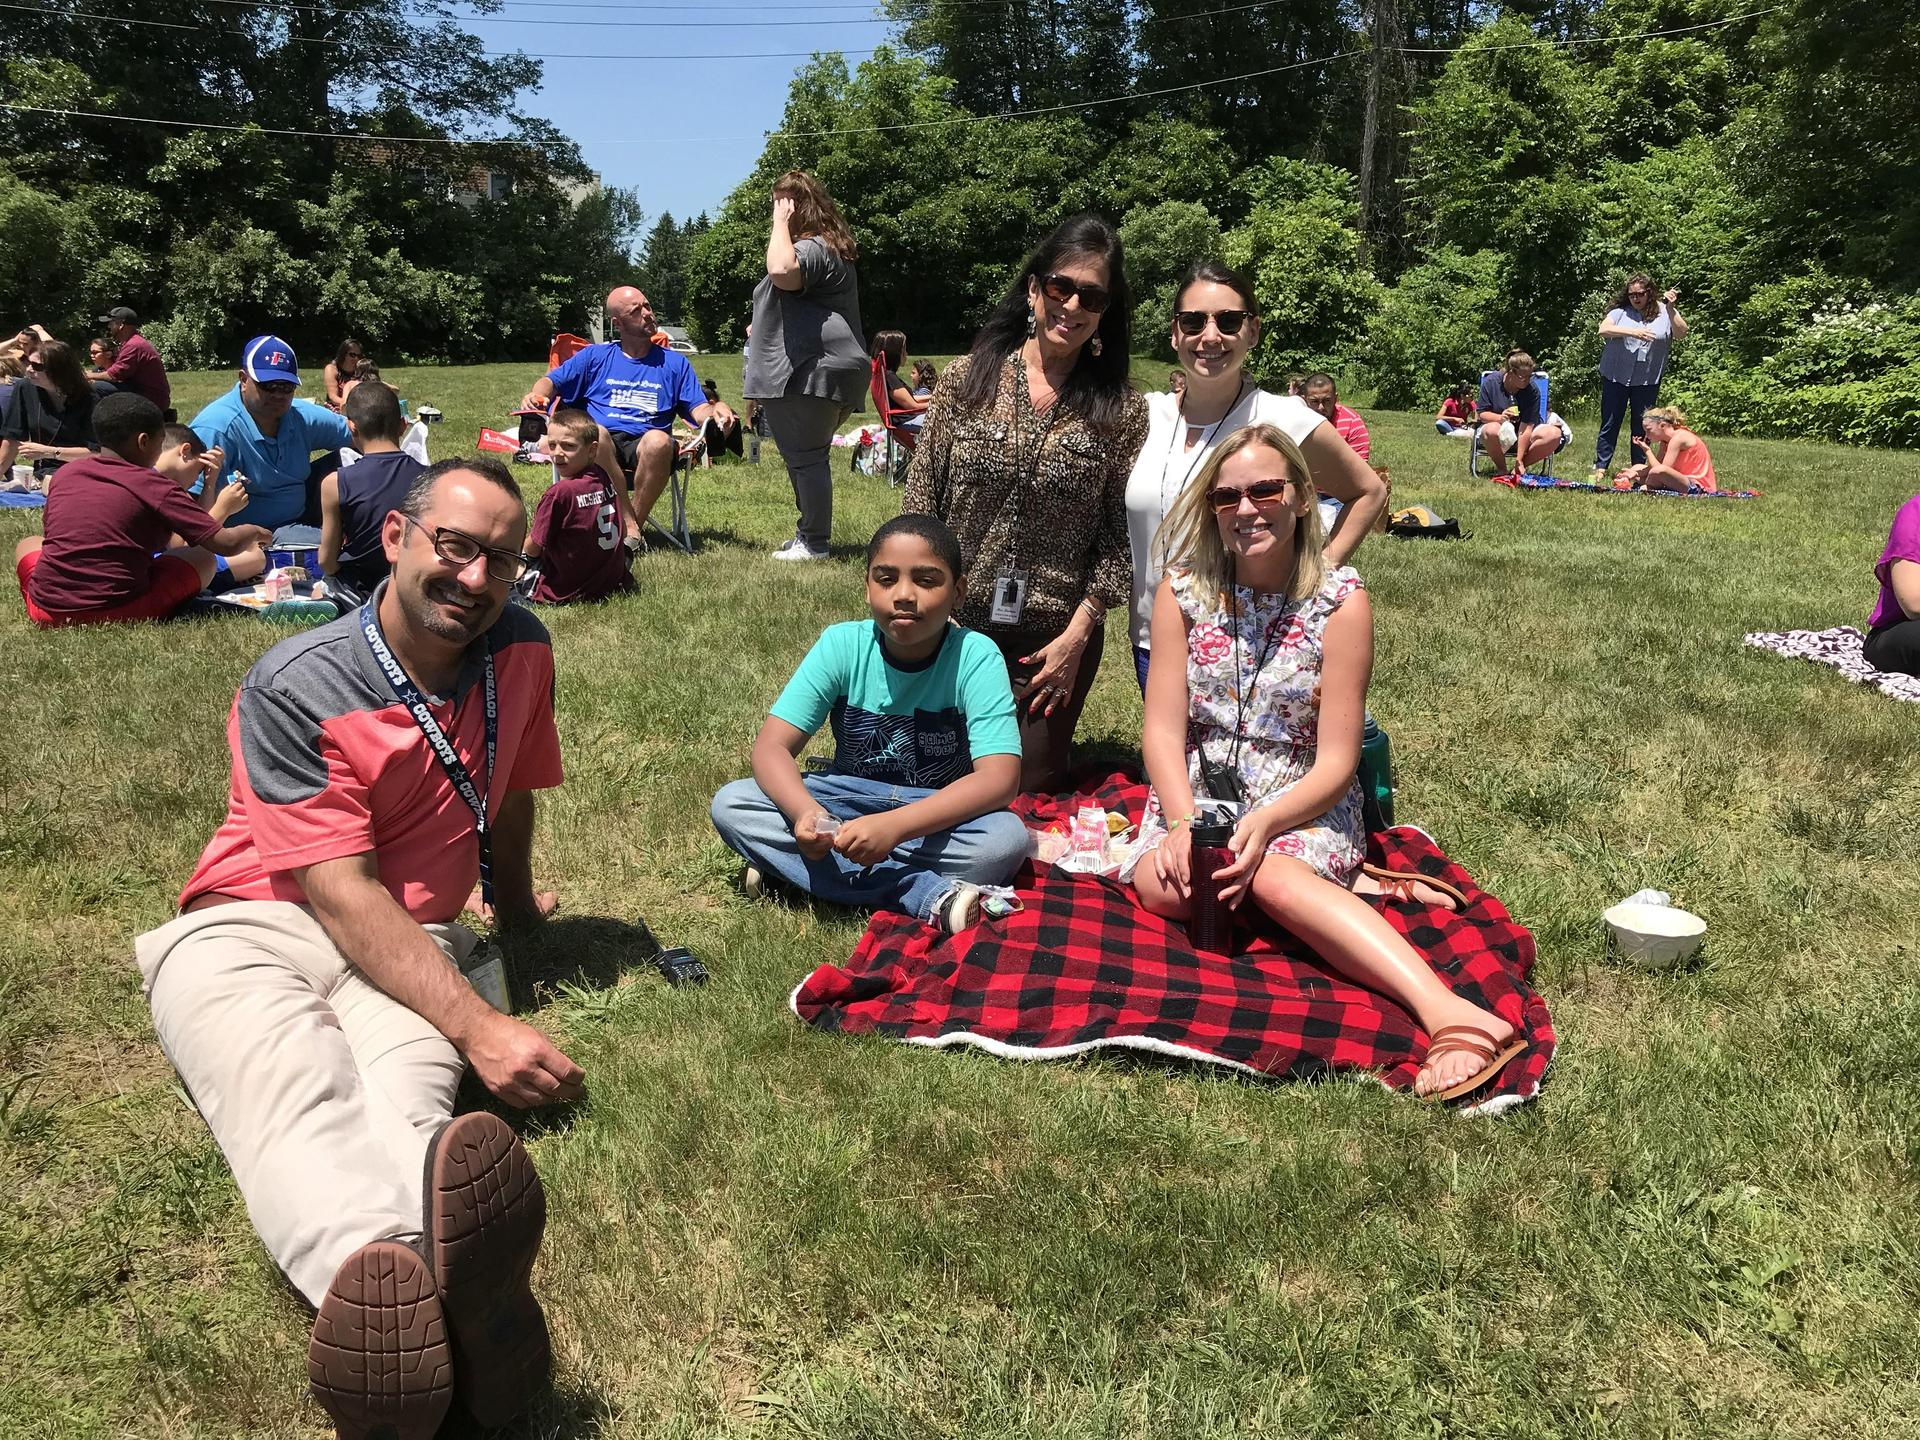 Teachers picnic with students.